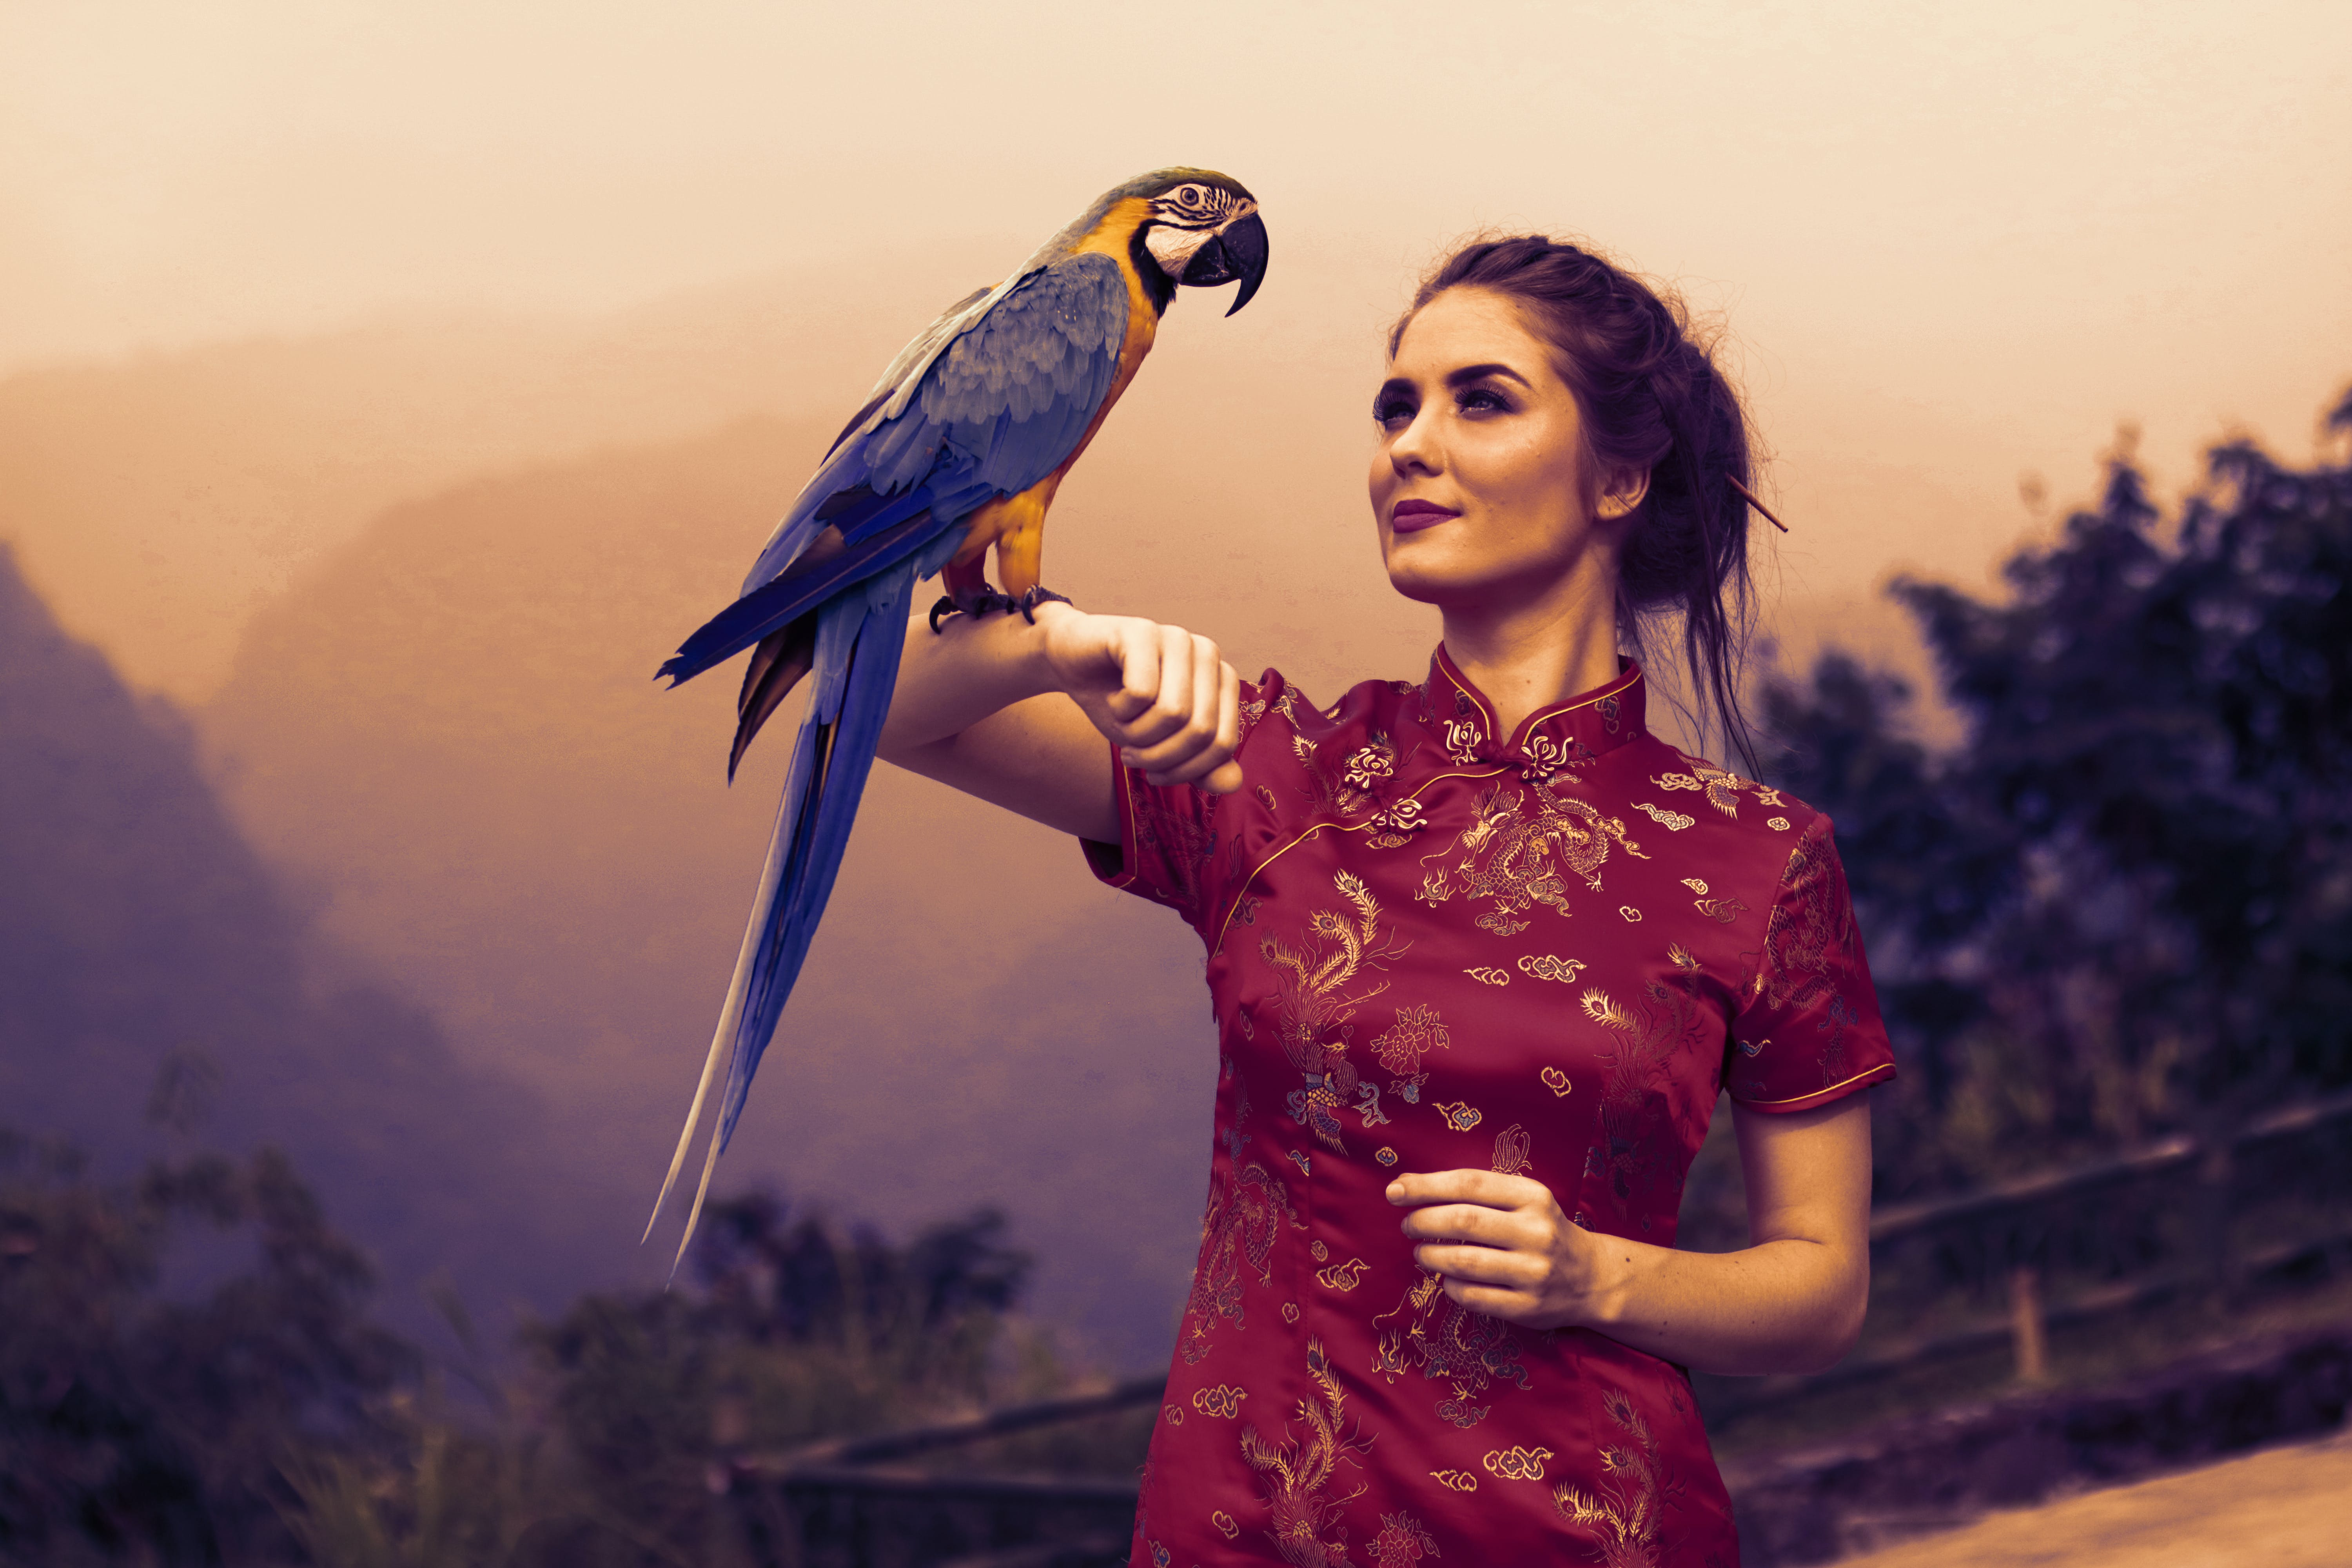 Free stock photo of woman with animal